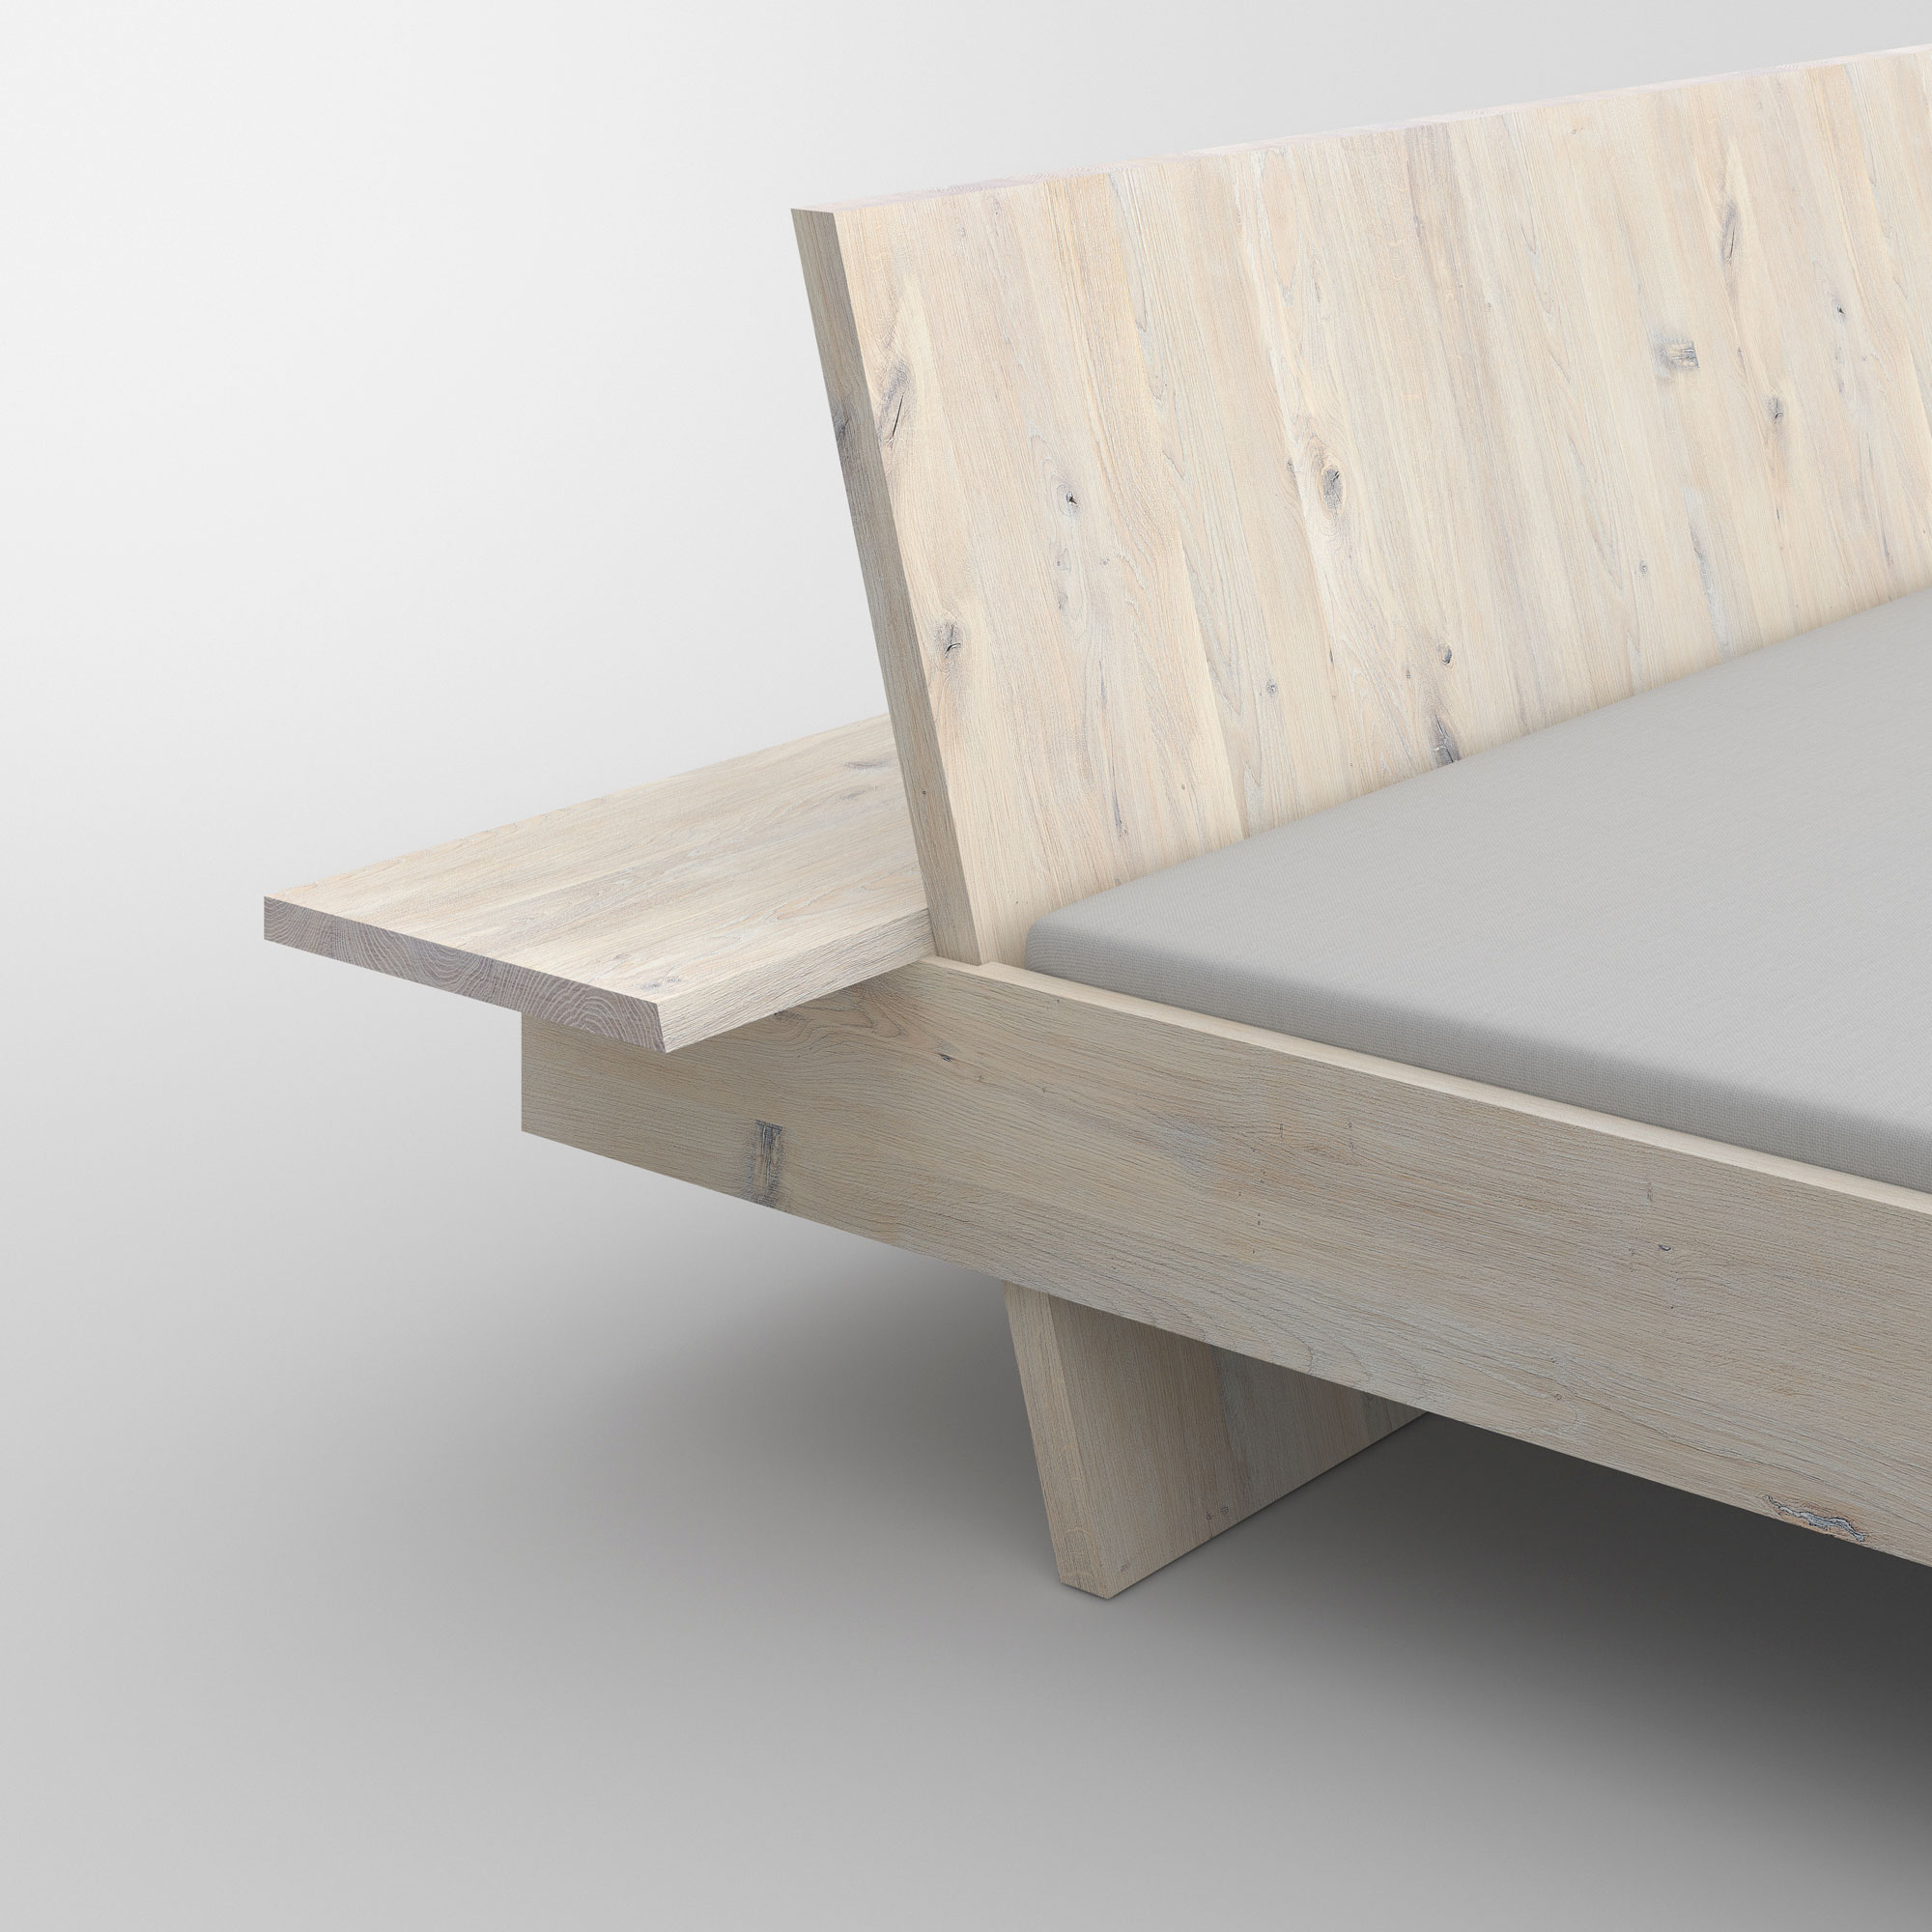 Design Solid Wood Bed SOMNIA cam4 custom made in solid wood by vitamin design